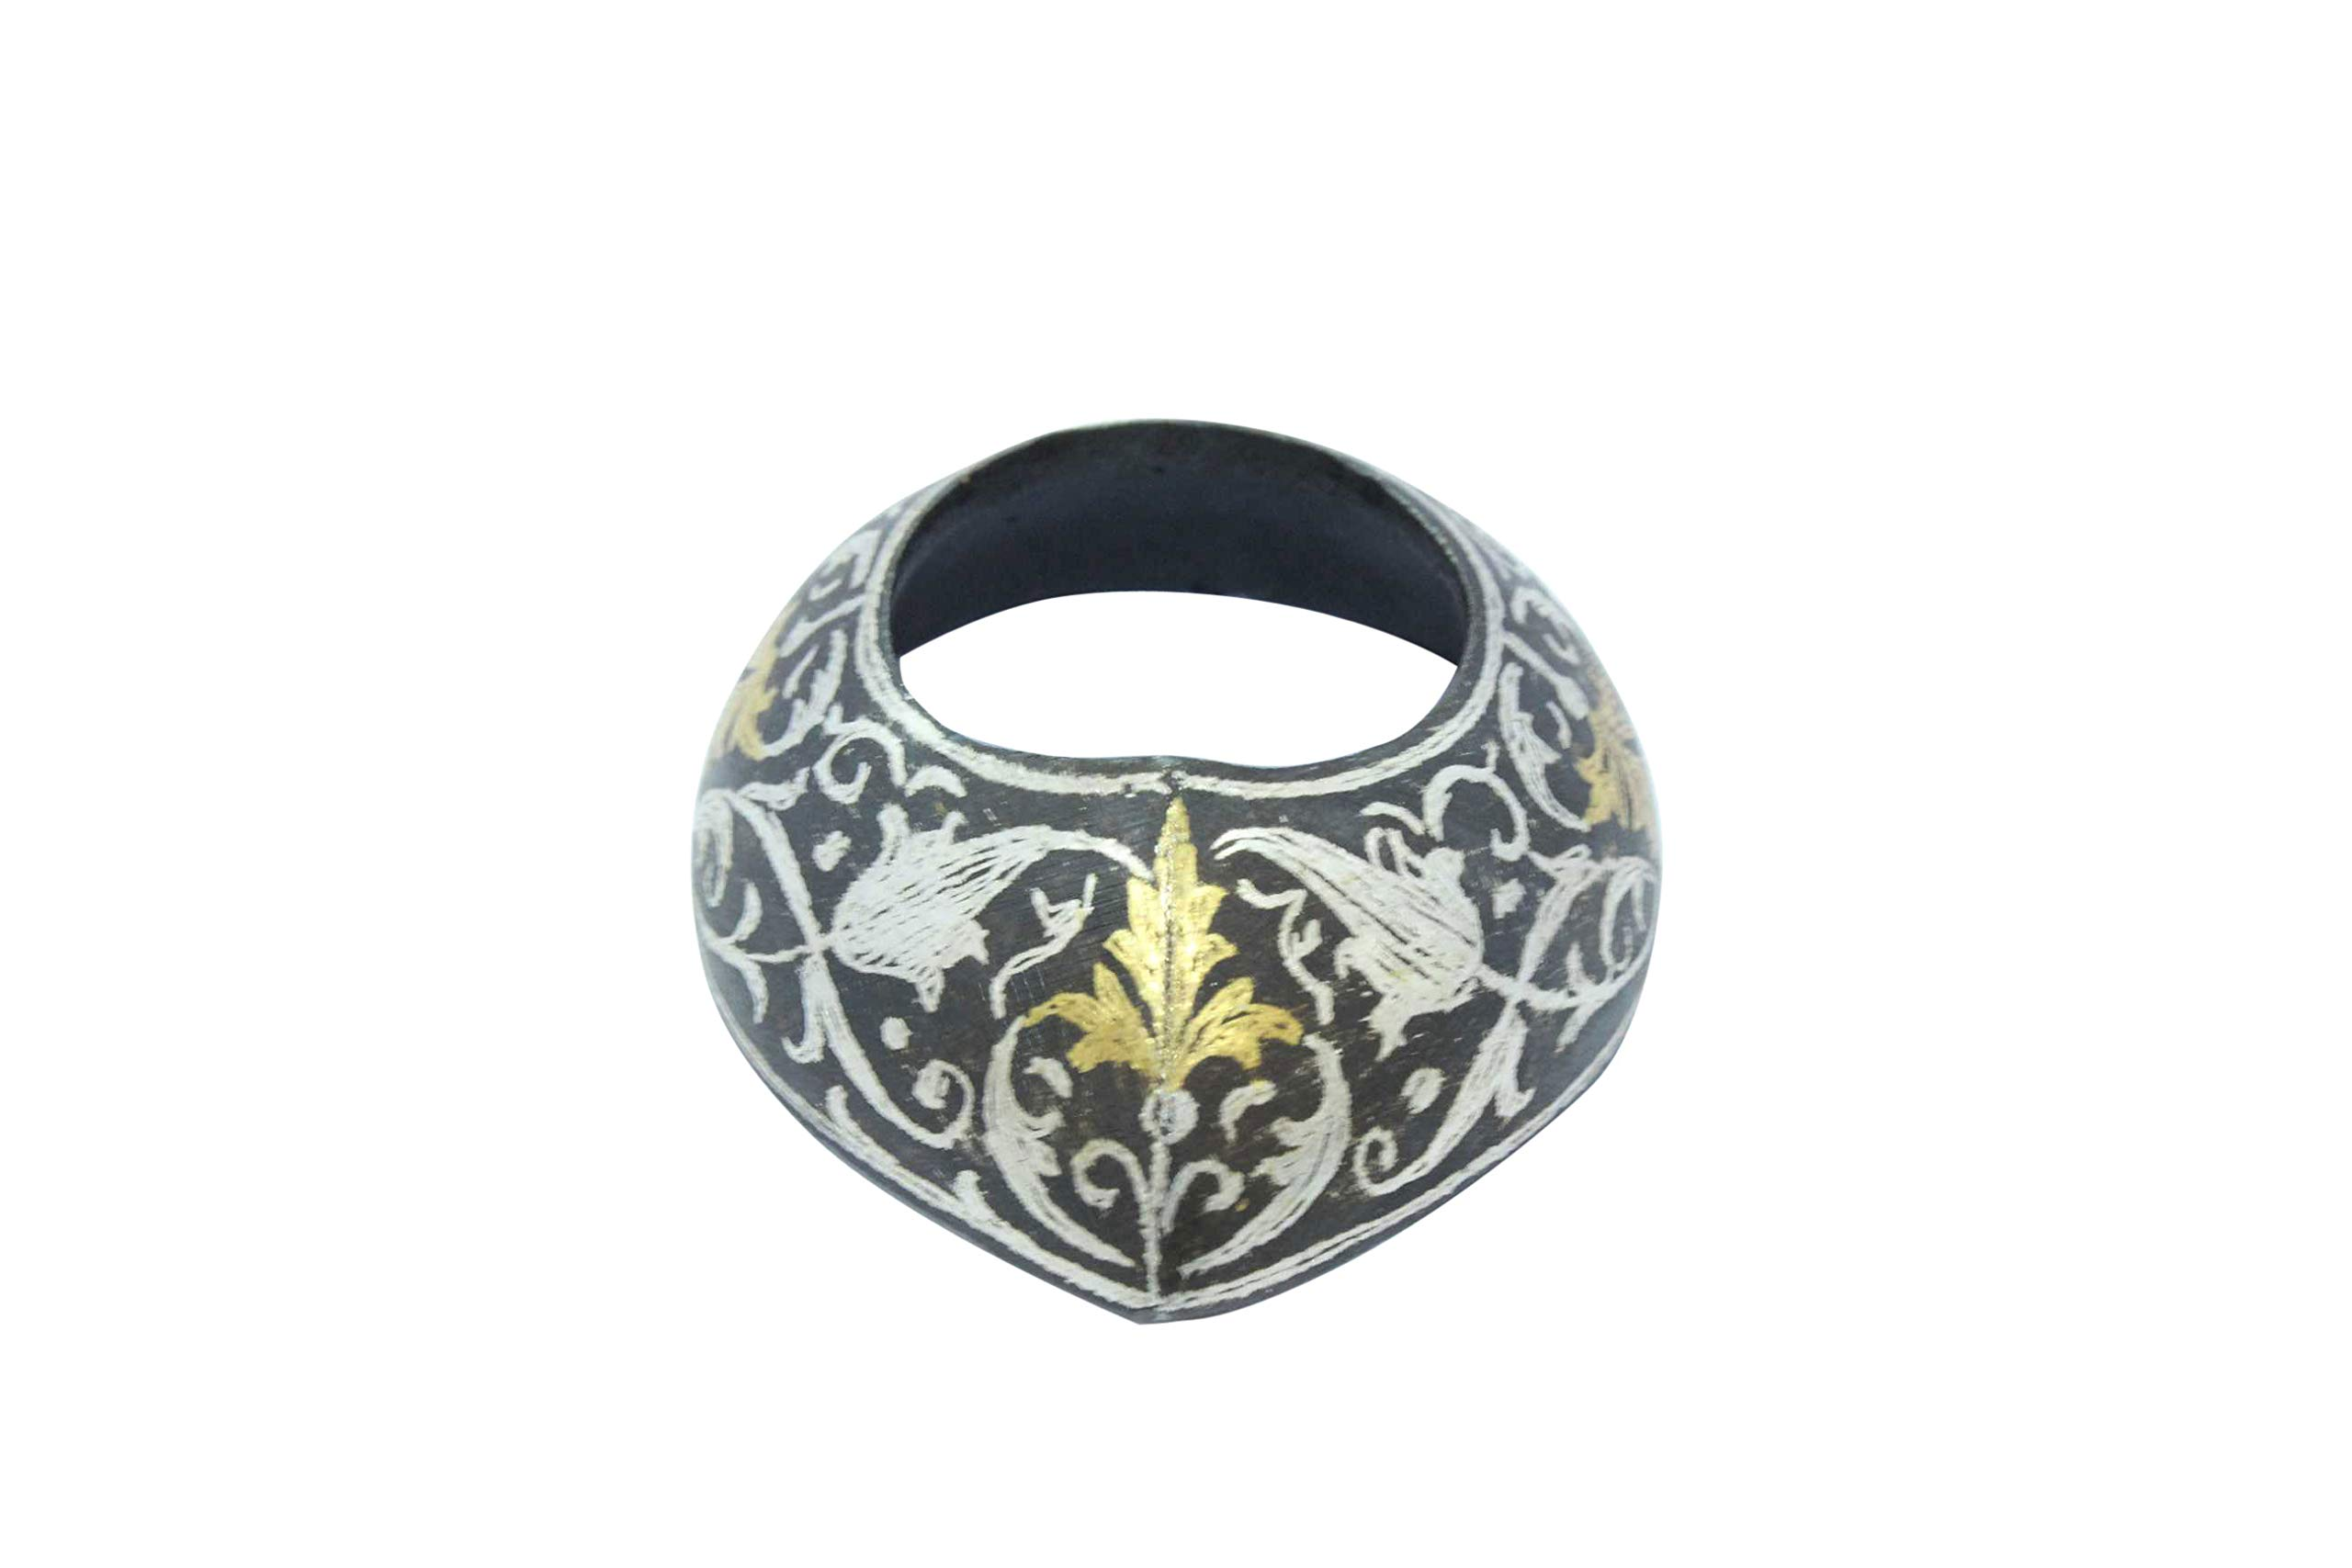 PH Artistic Steel Silver Gold Wire Work Thumb Archery Ring Bow Shooting Handcrafted Size 12